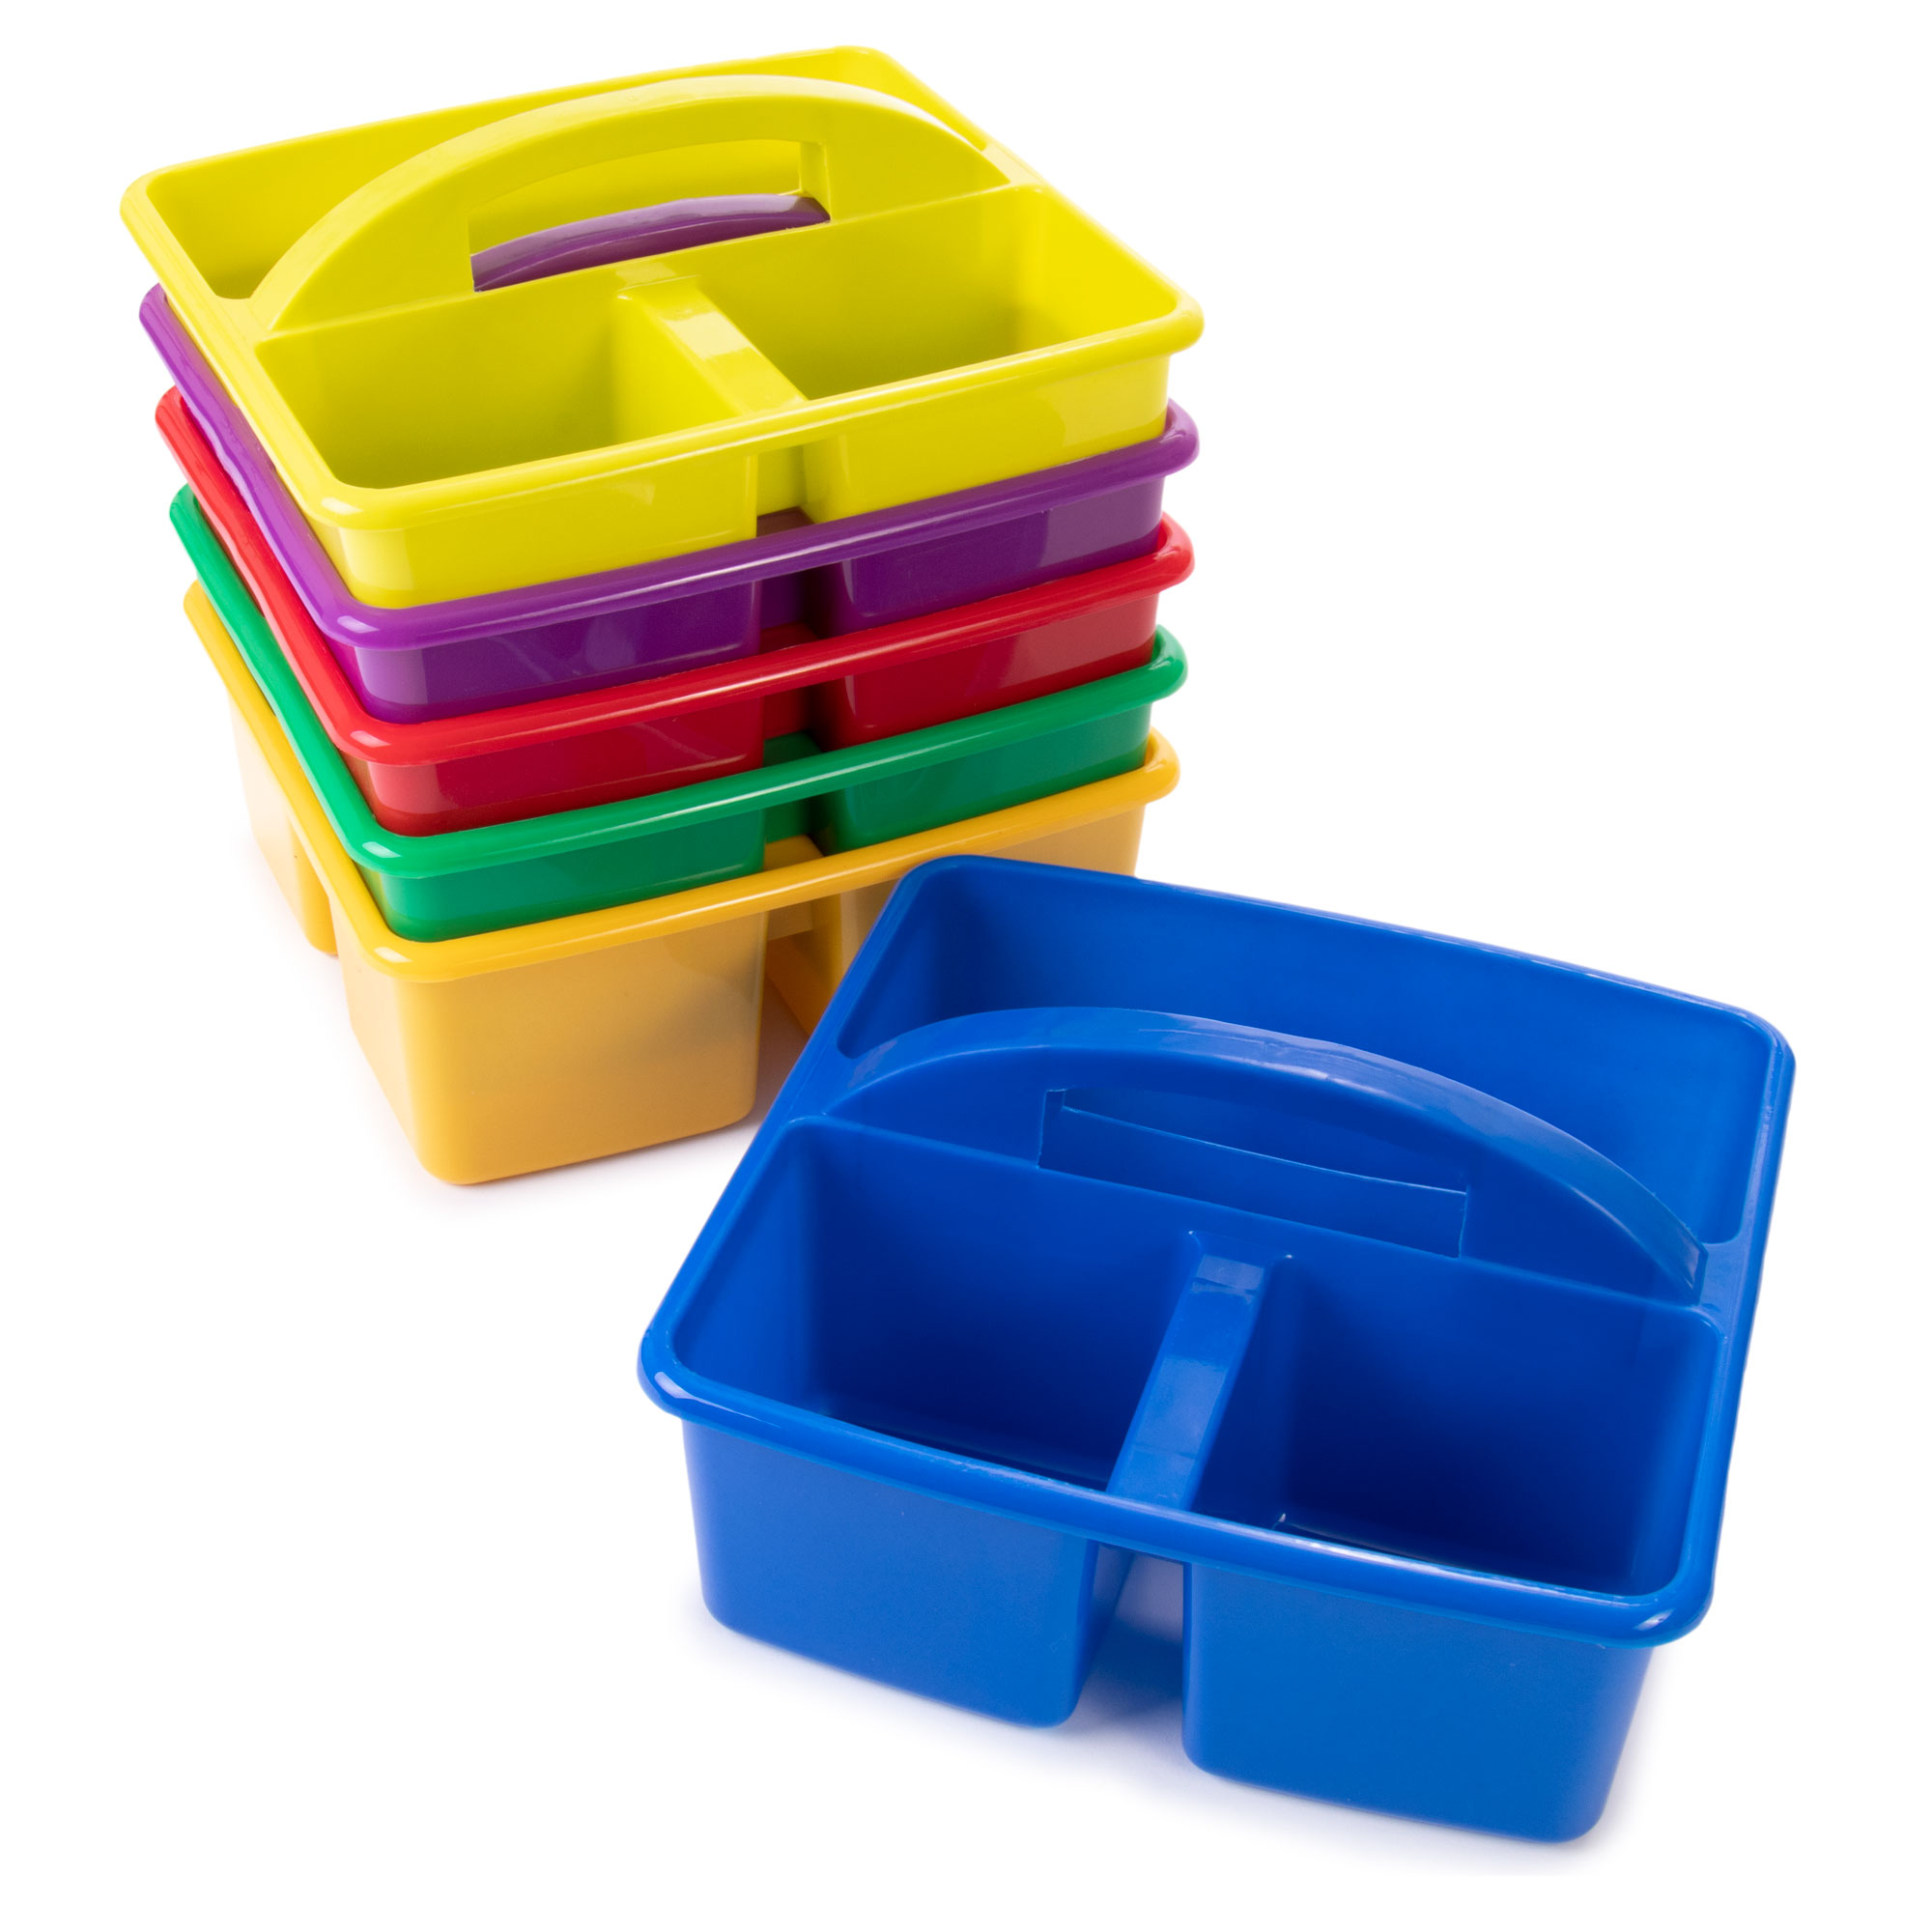 Assorted Color Table Caddies, 6-pack